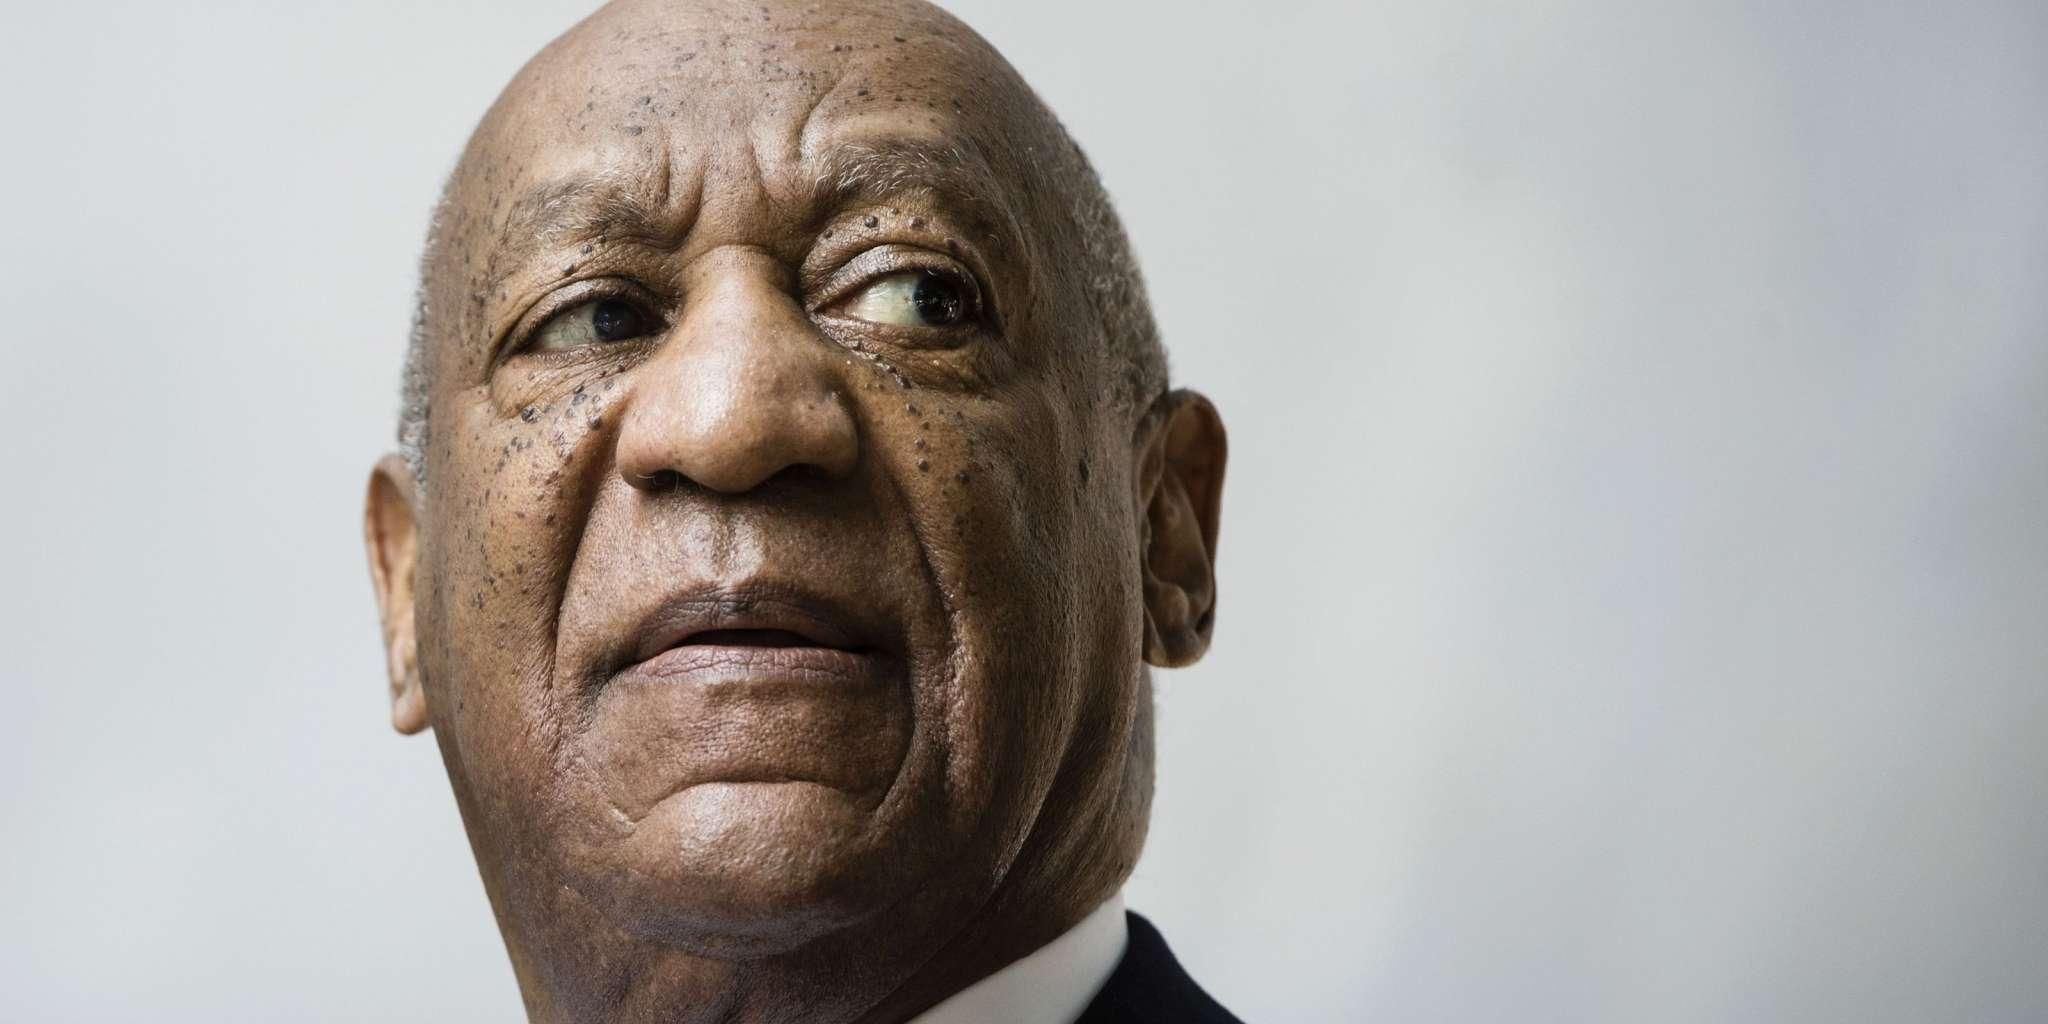 Bill Cosby Reportedly Blasted His Insurance Company After Settling A Sexual Assault Lawsuit Without His Consent